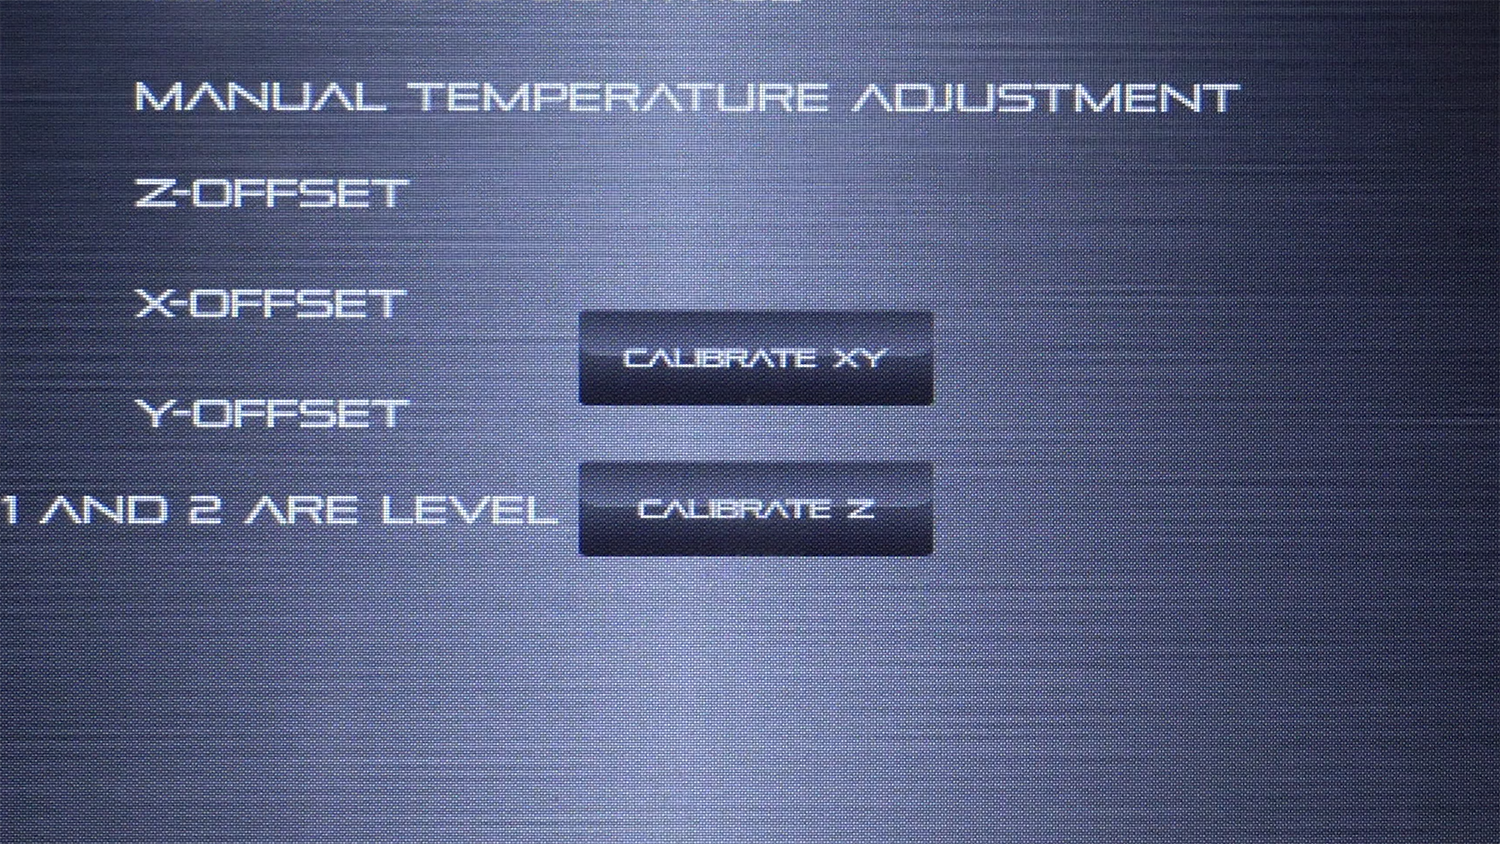 The CALIBRATE XY button can be found above the CALIBRATE Z button in the ADVANCED SETTINGS menu.